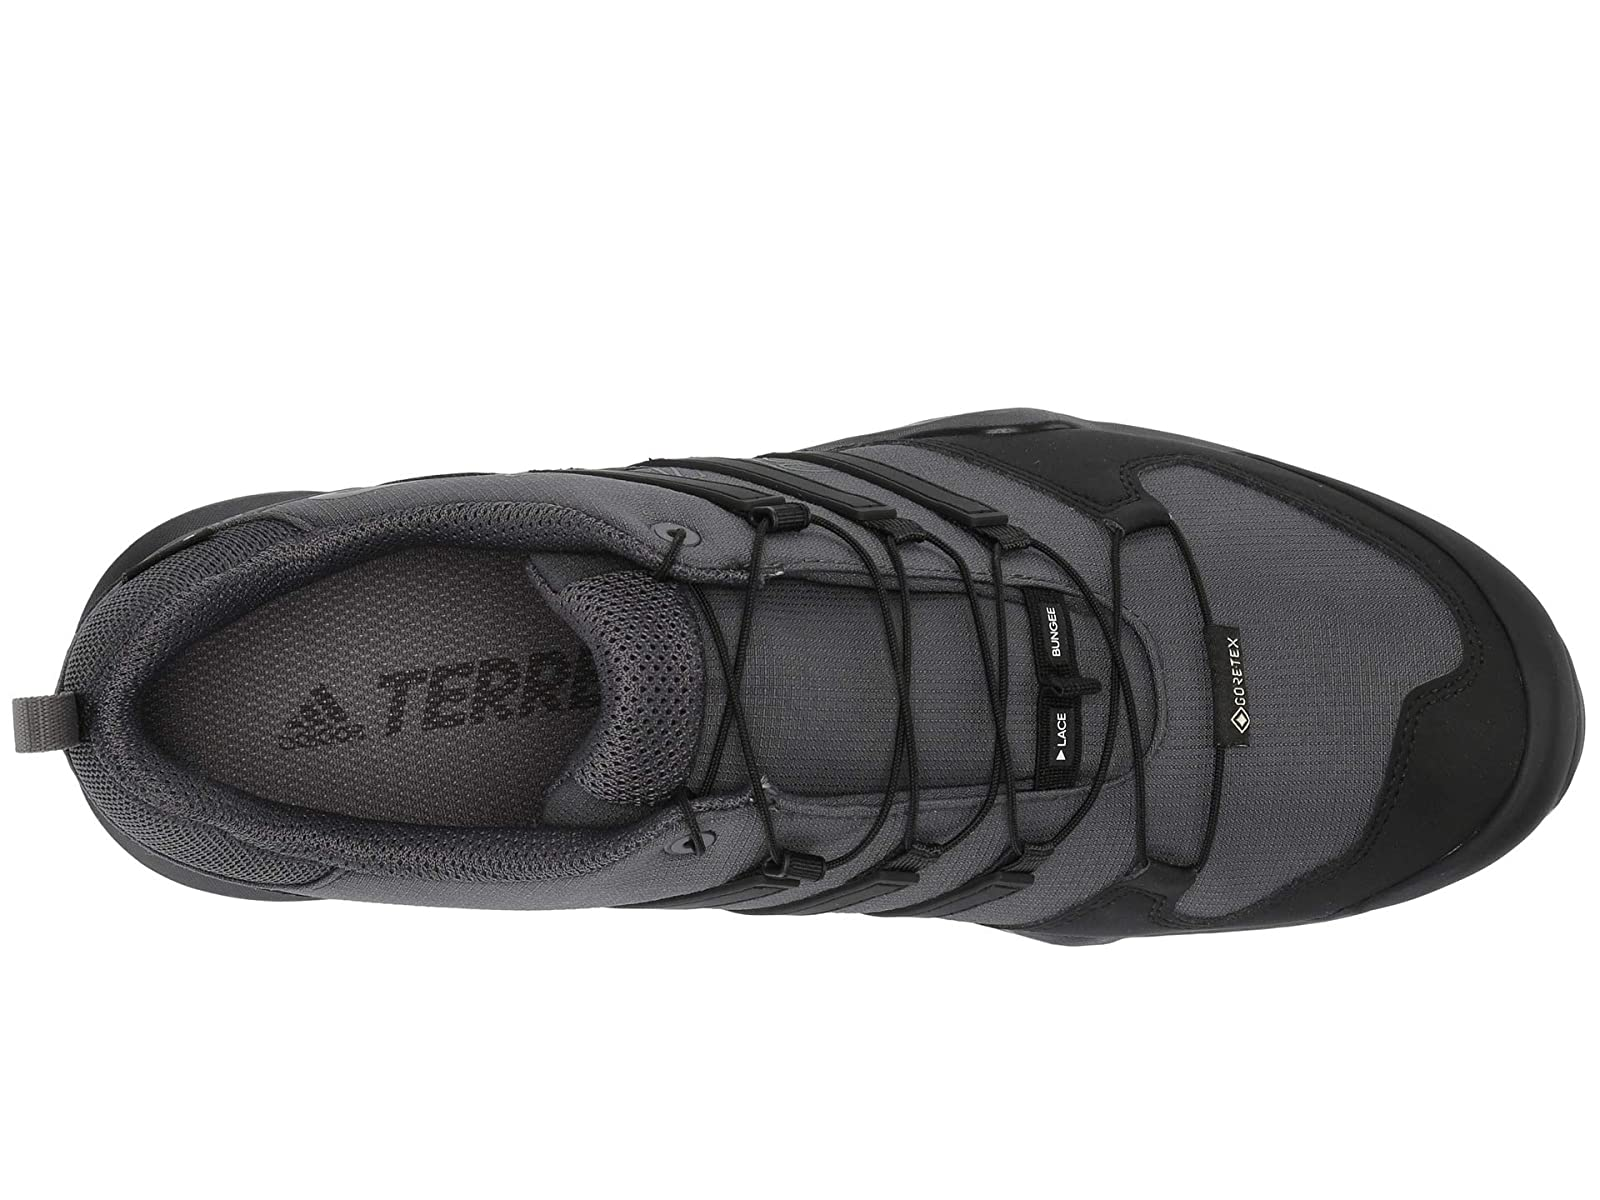 Man-039-s-Sneakers-amp-Athletic-Shoes-adidas-Outdoor-Terrex-Swift-R2-GTX thumbnail 10